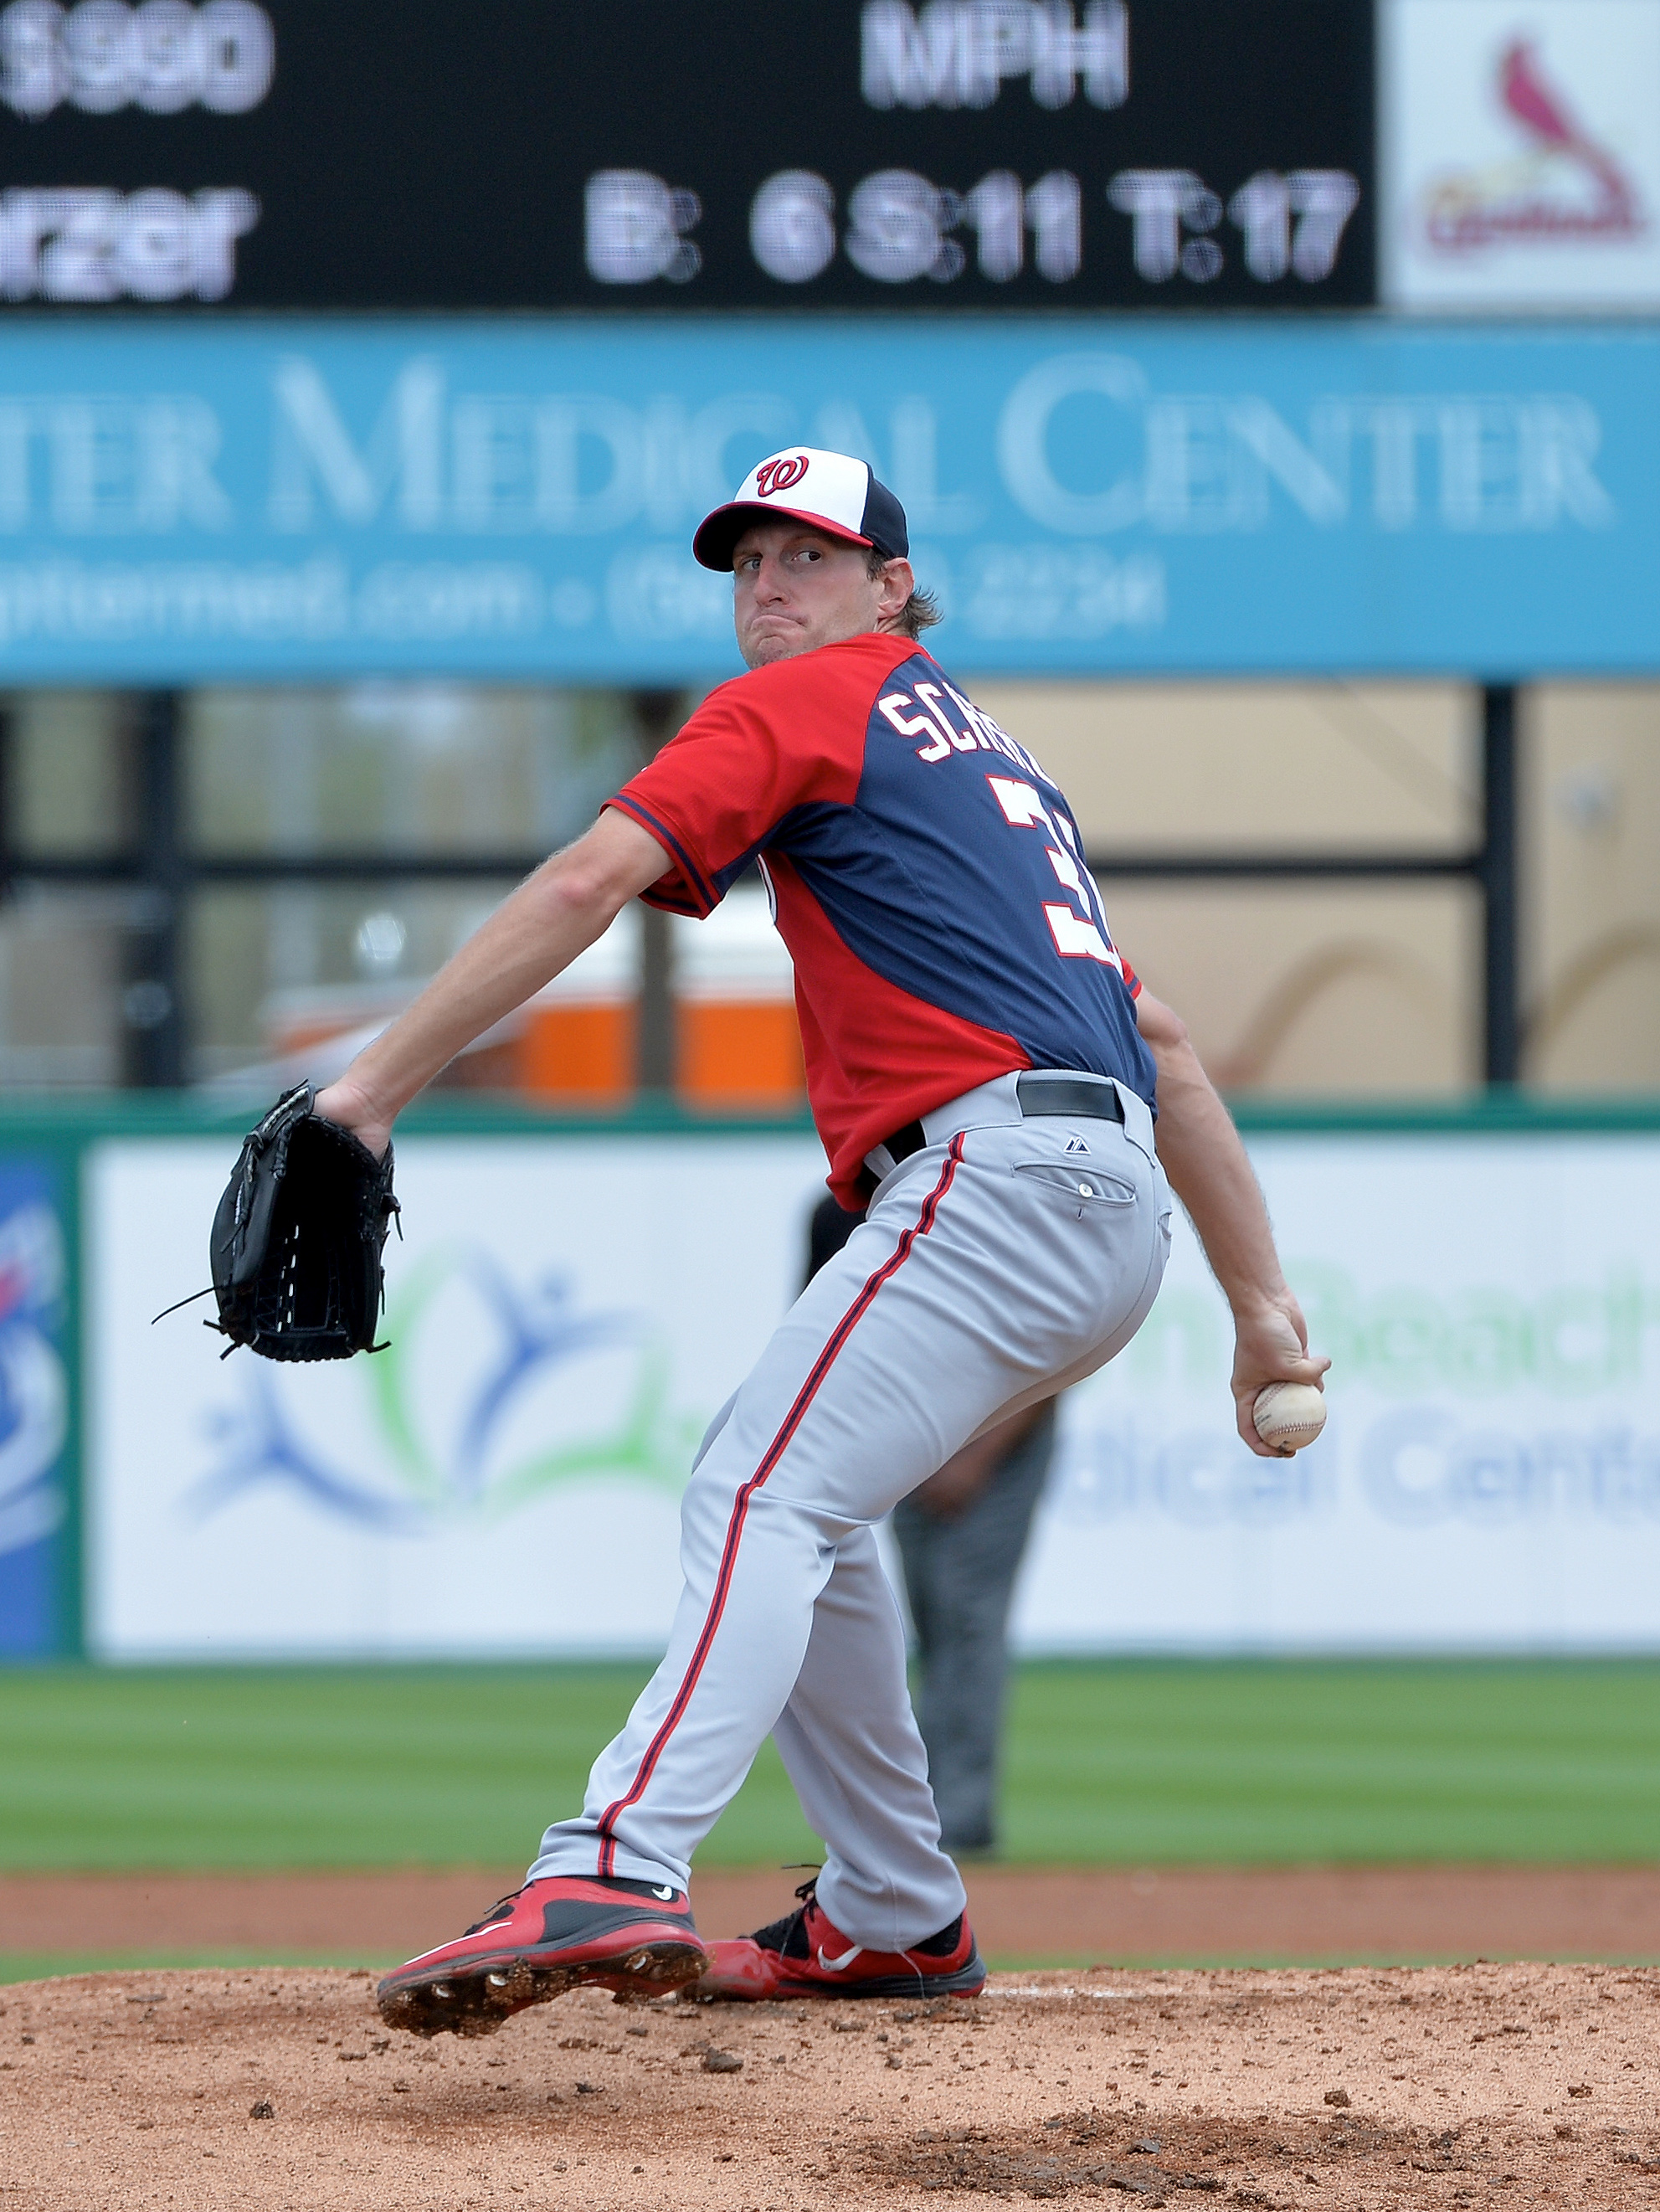 Is Max Scherzer the final missing piece to bring the Nationals franchise their first ever title?